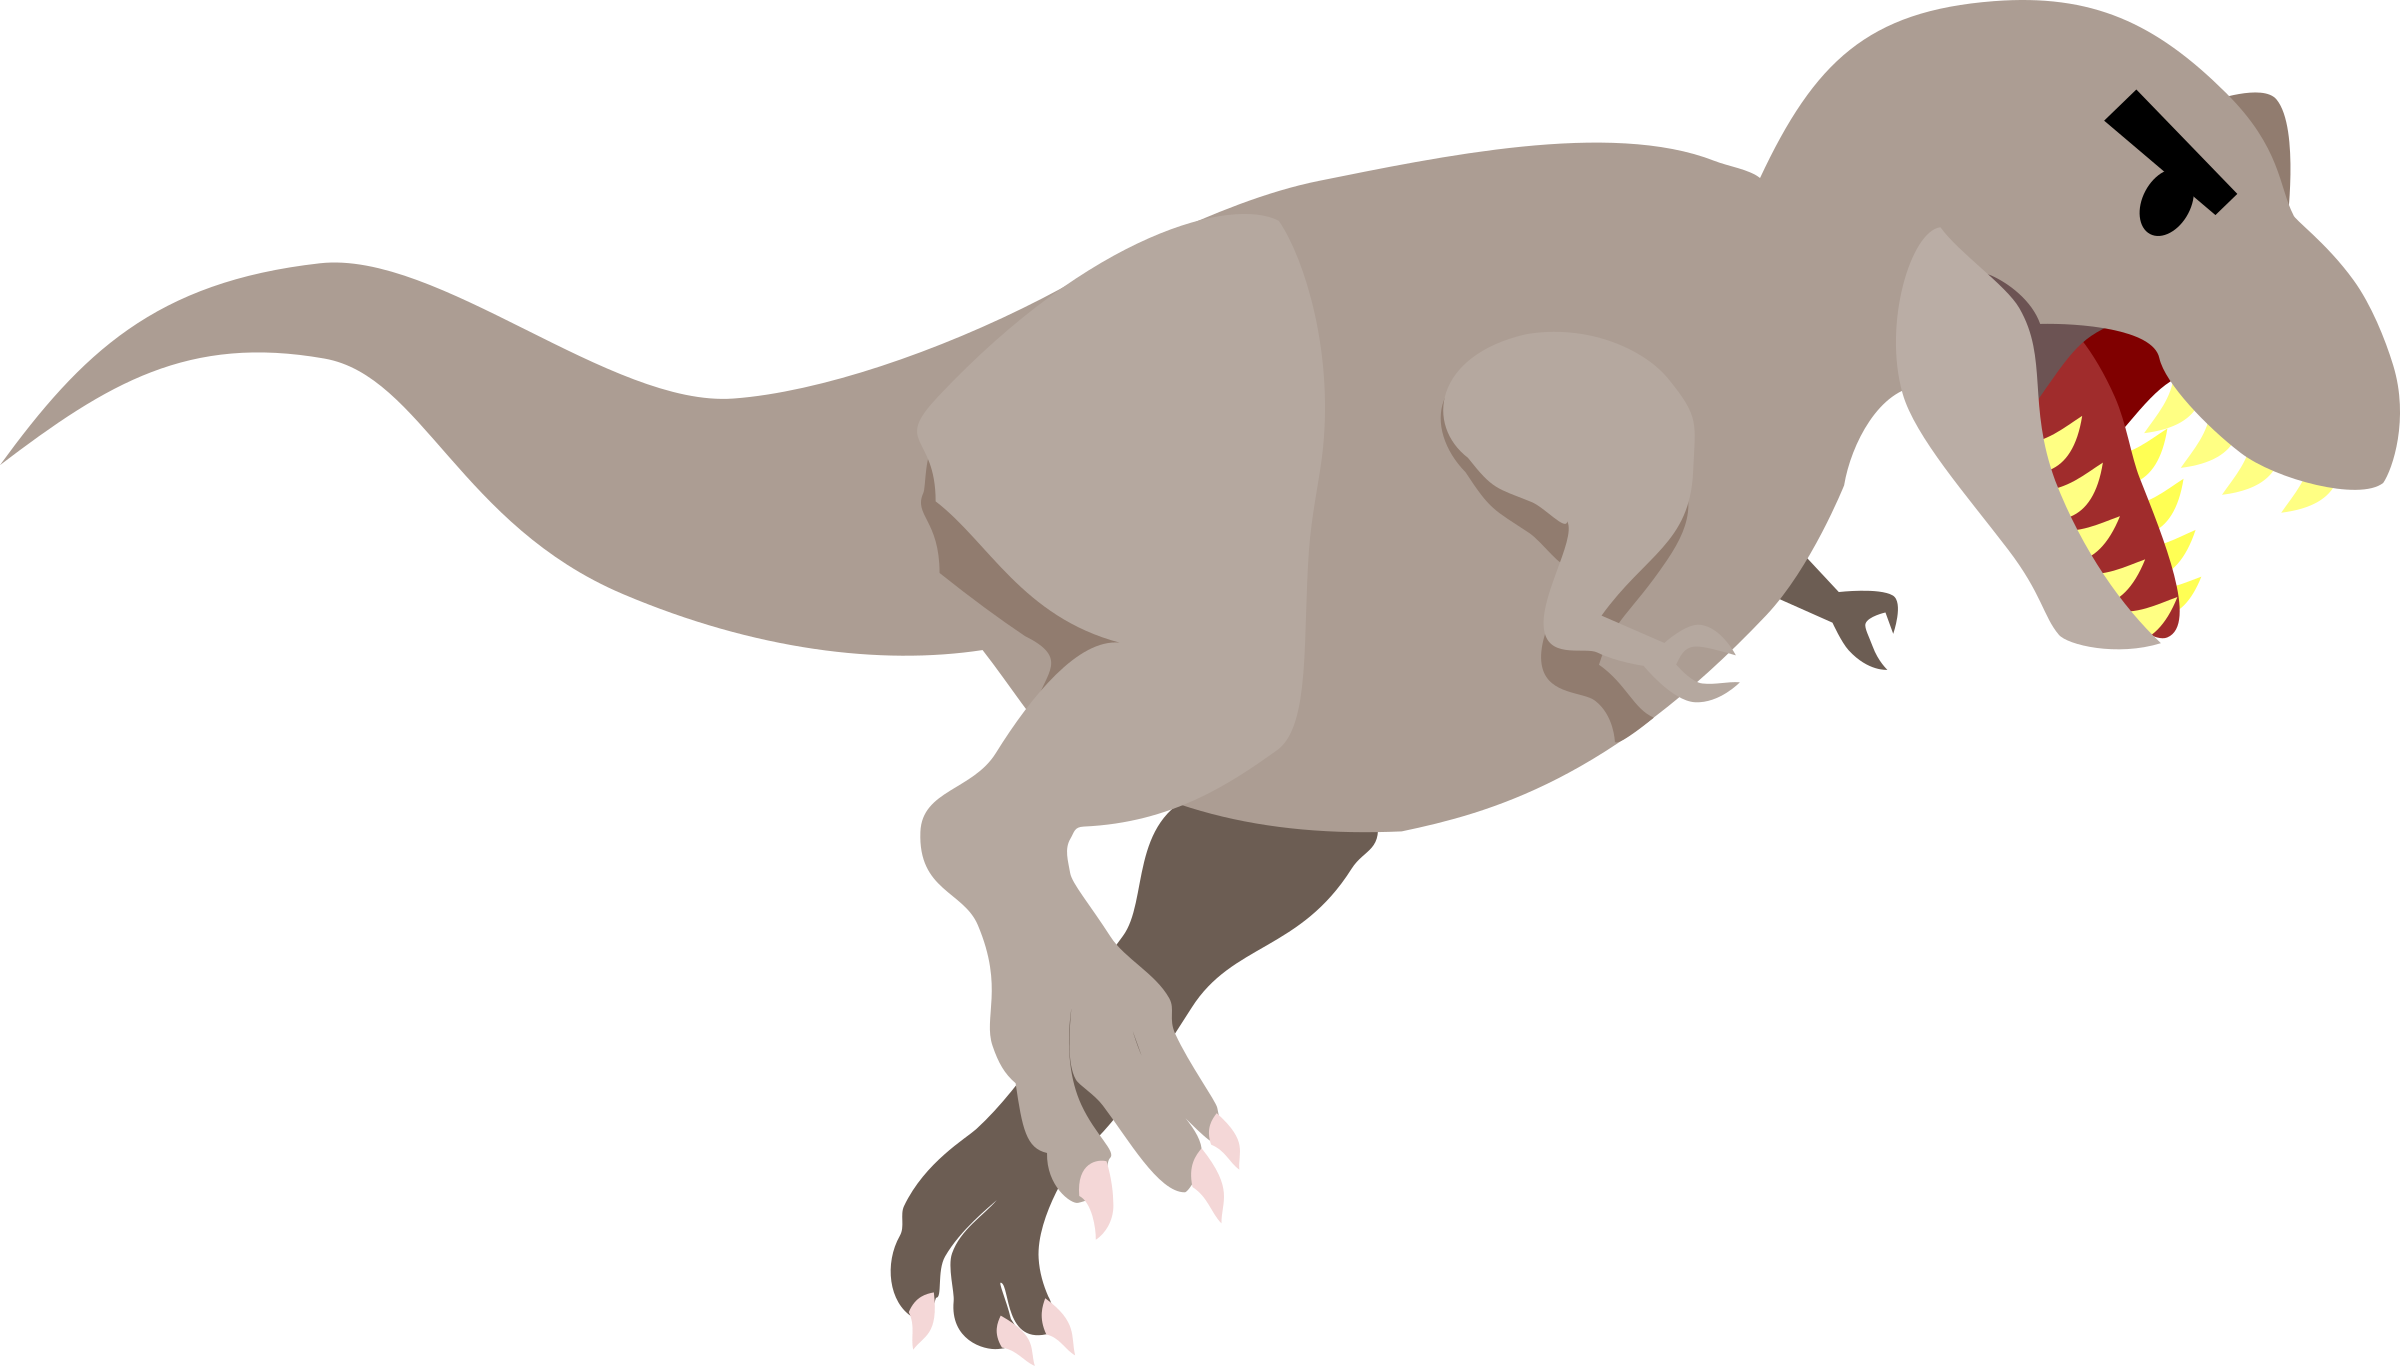 png library stock Dinosaur Skeleton Clipart at GetDrawings